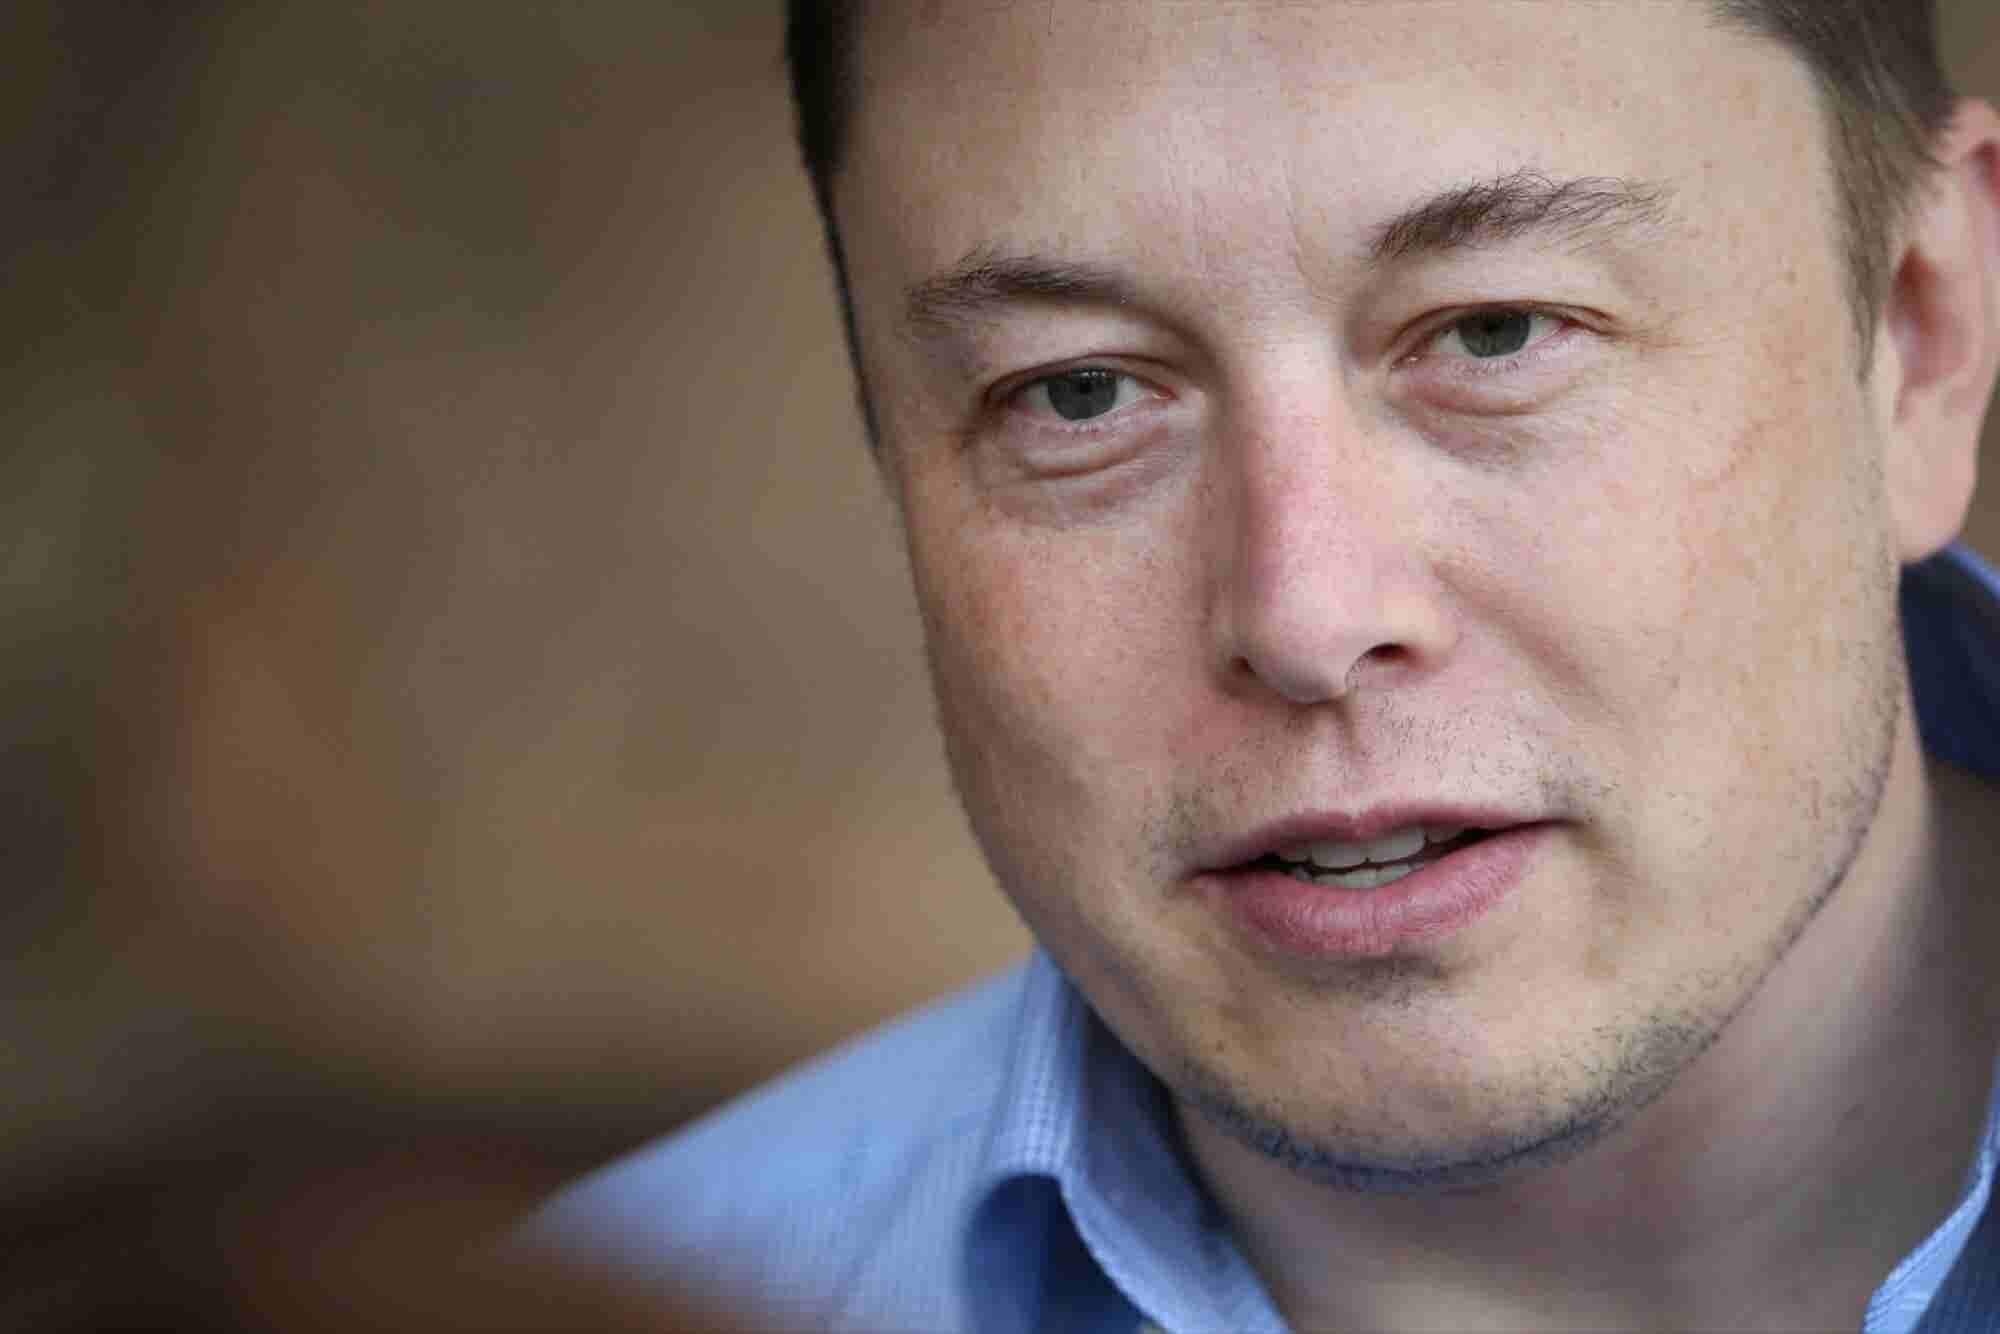 Elon Musk Expects to Have a Brain-Machine Interface in 4 Years